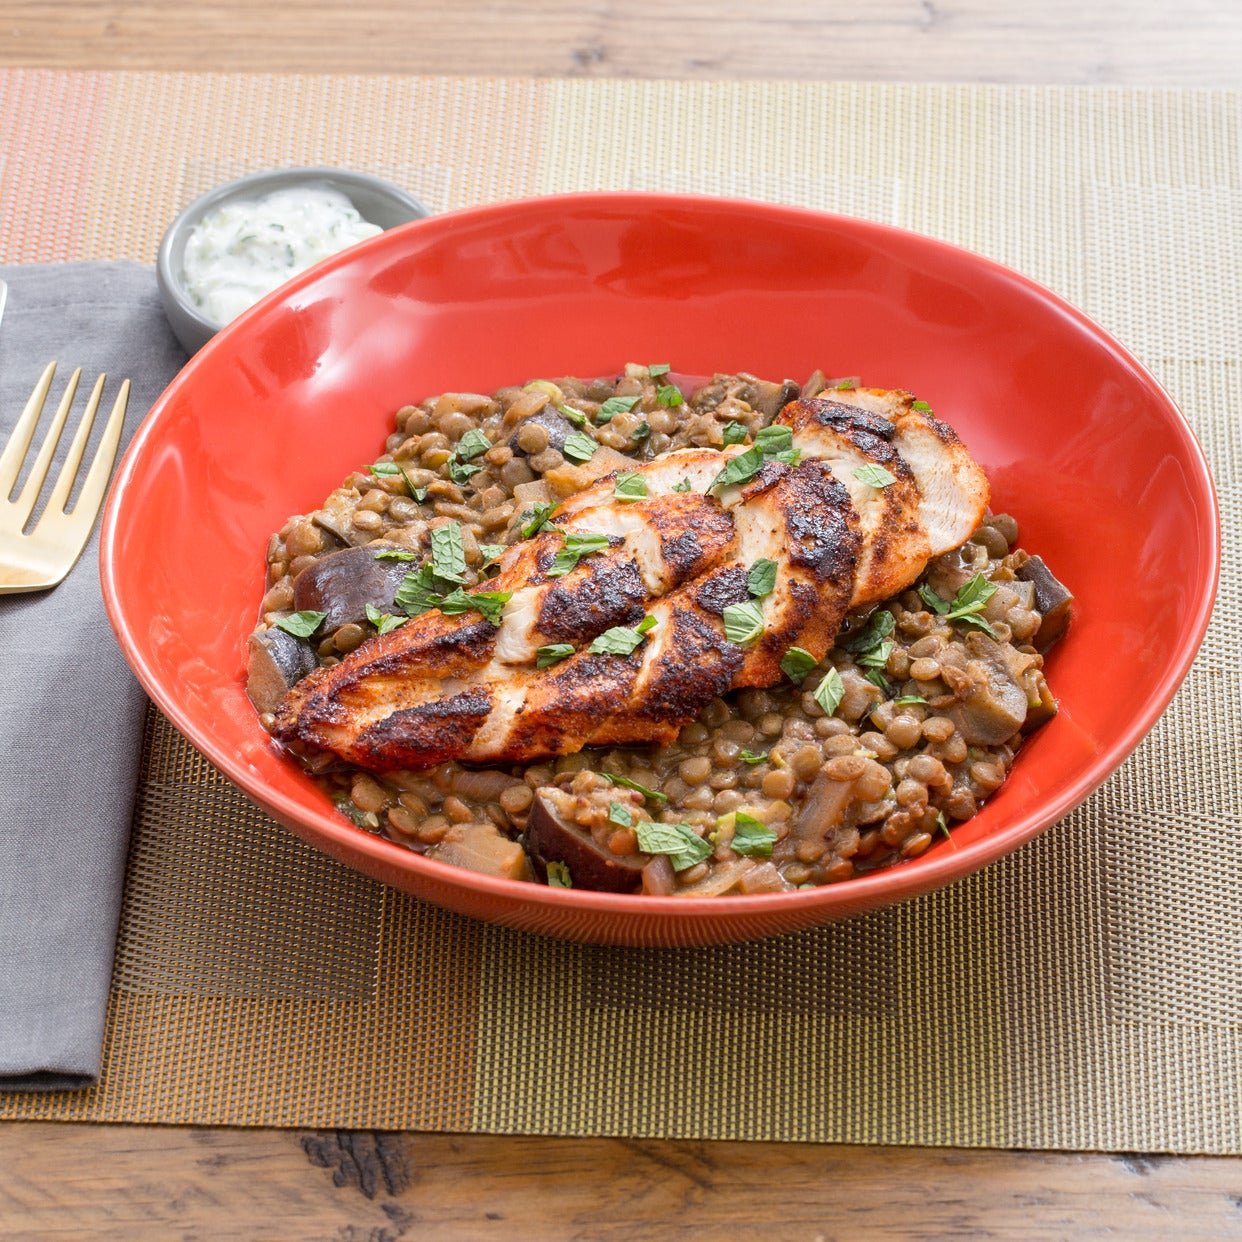 Tandoori-Spiced Chicken with Green Lentils, Heirloom Eggplant & Cucumber-Mint Yogurt